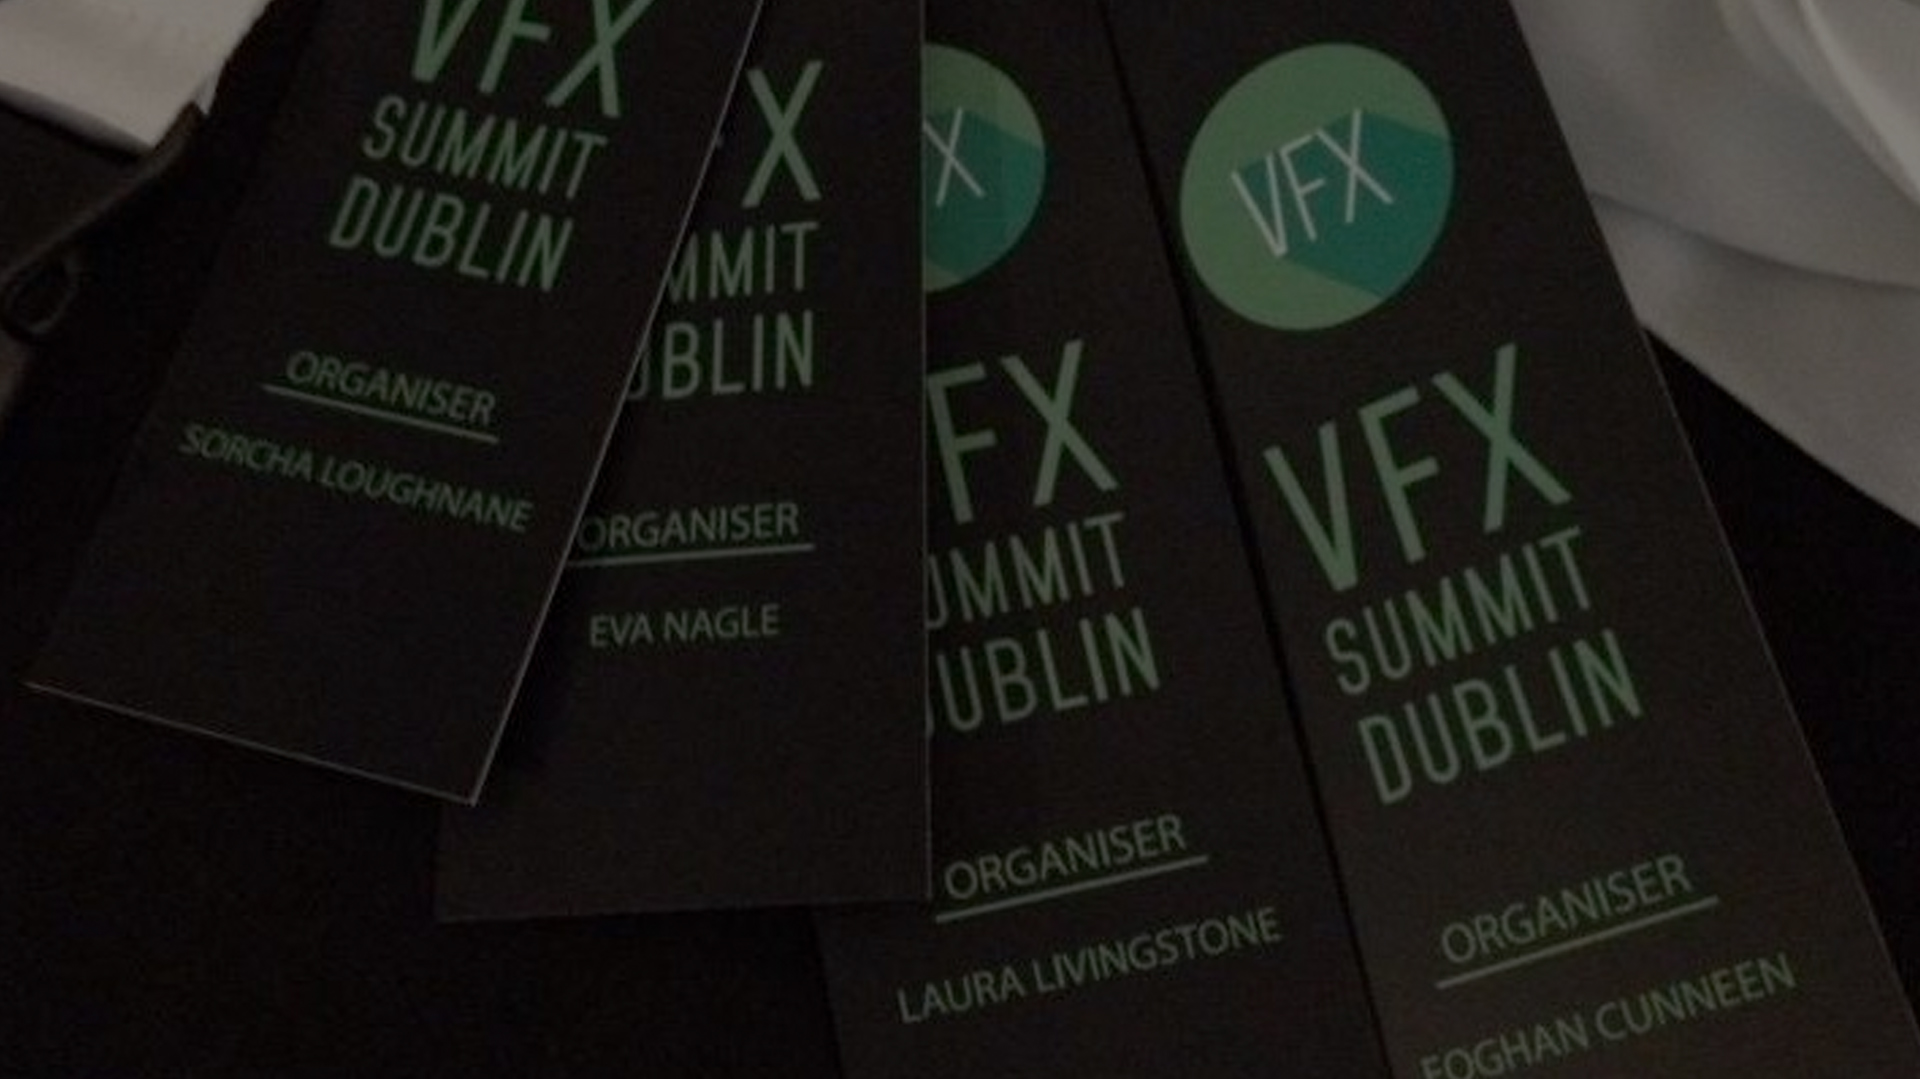 IRISH VFX + ANIMATION SUMMIT